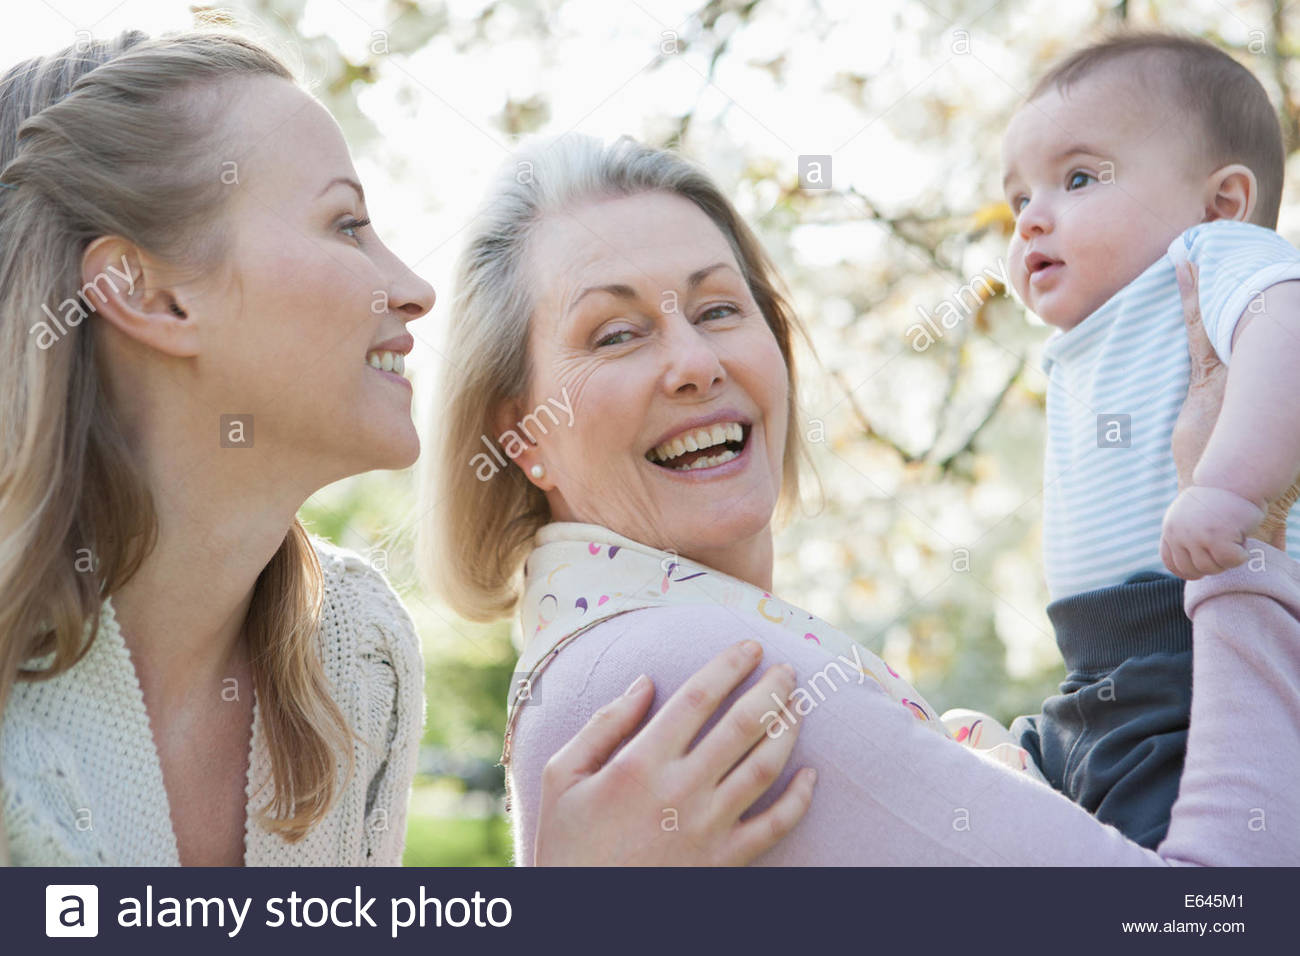 Father, mother and son Photo Stock